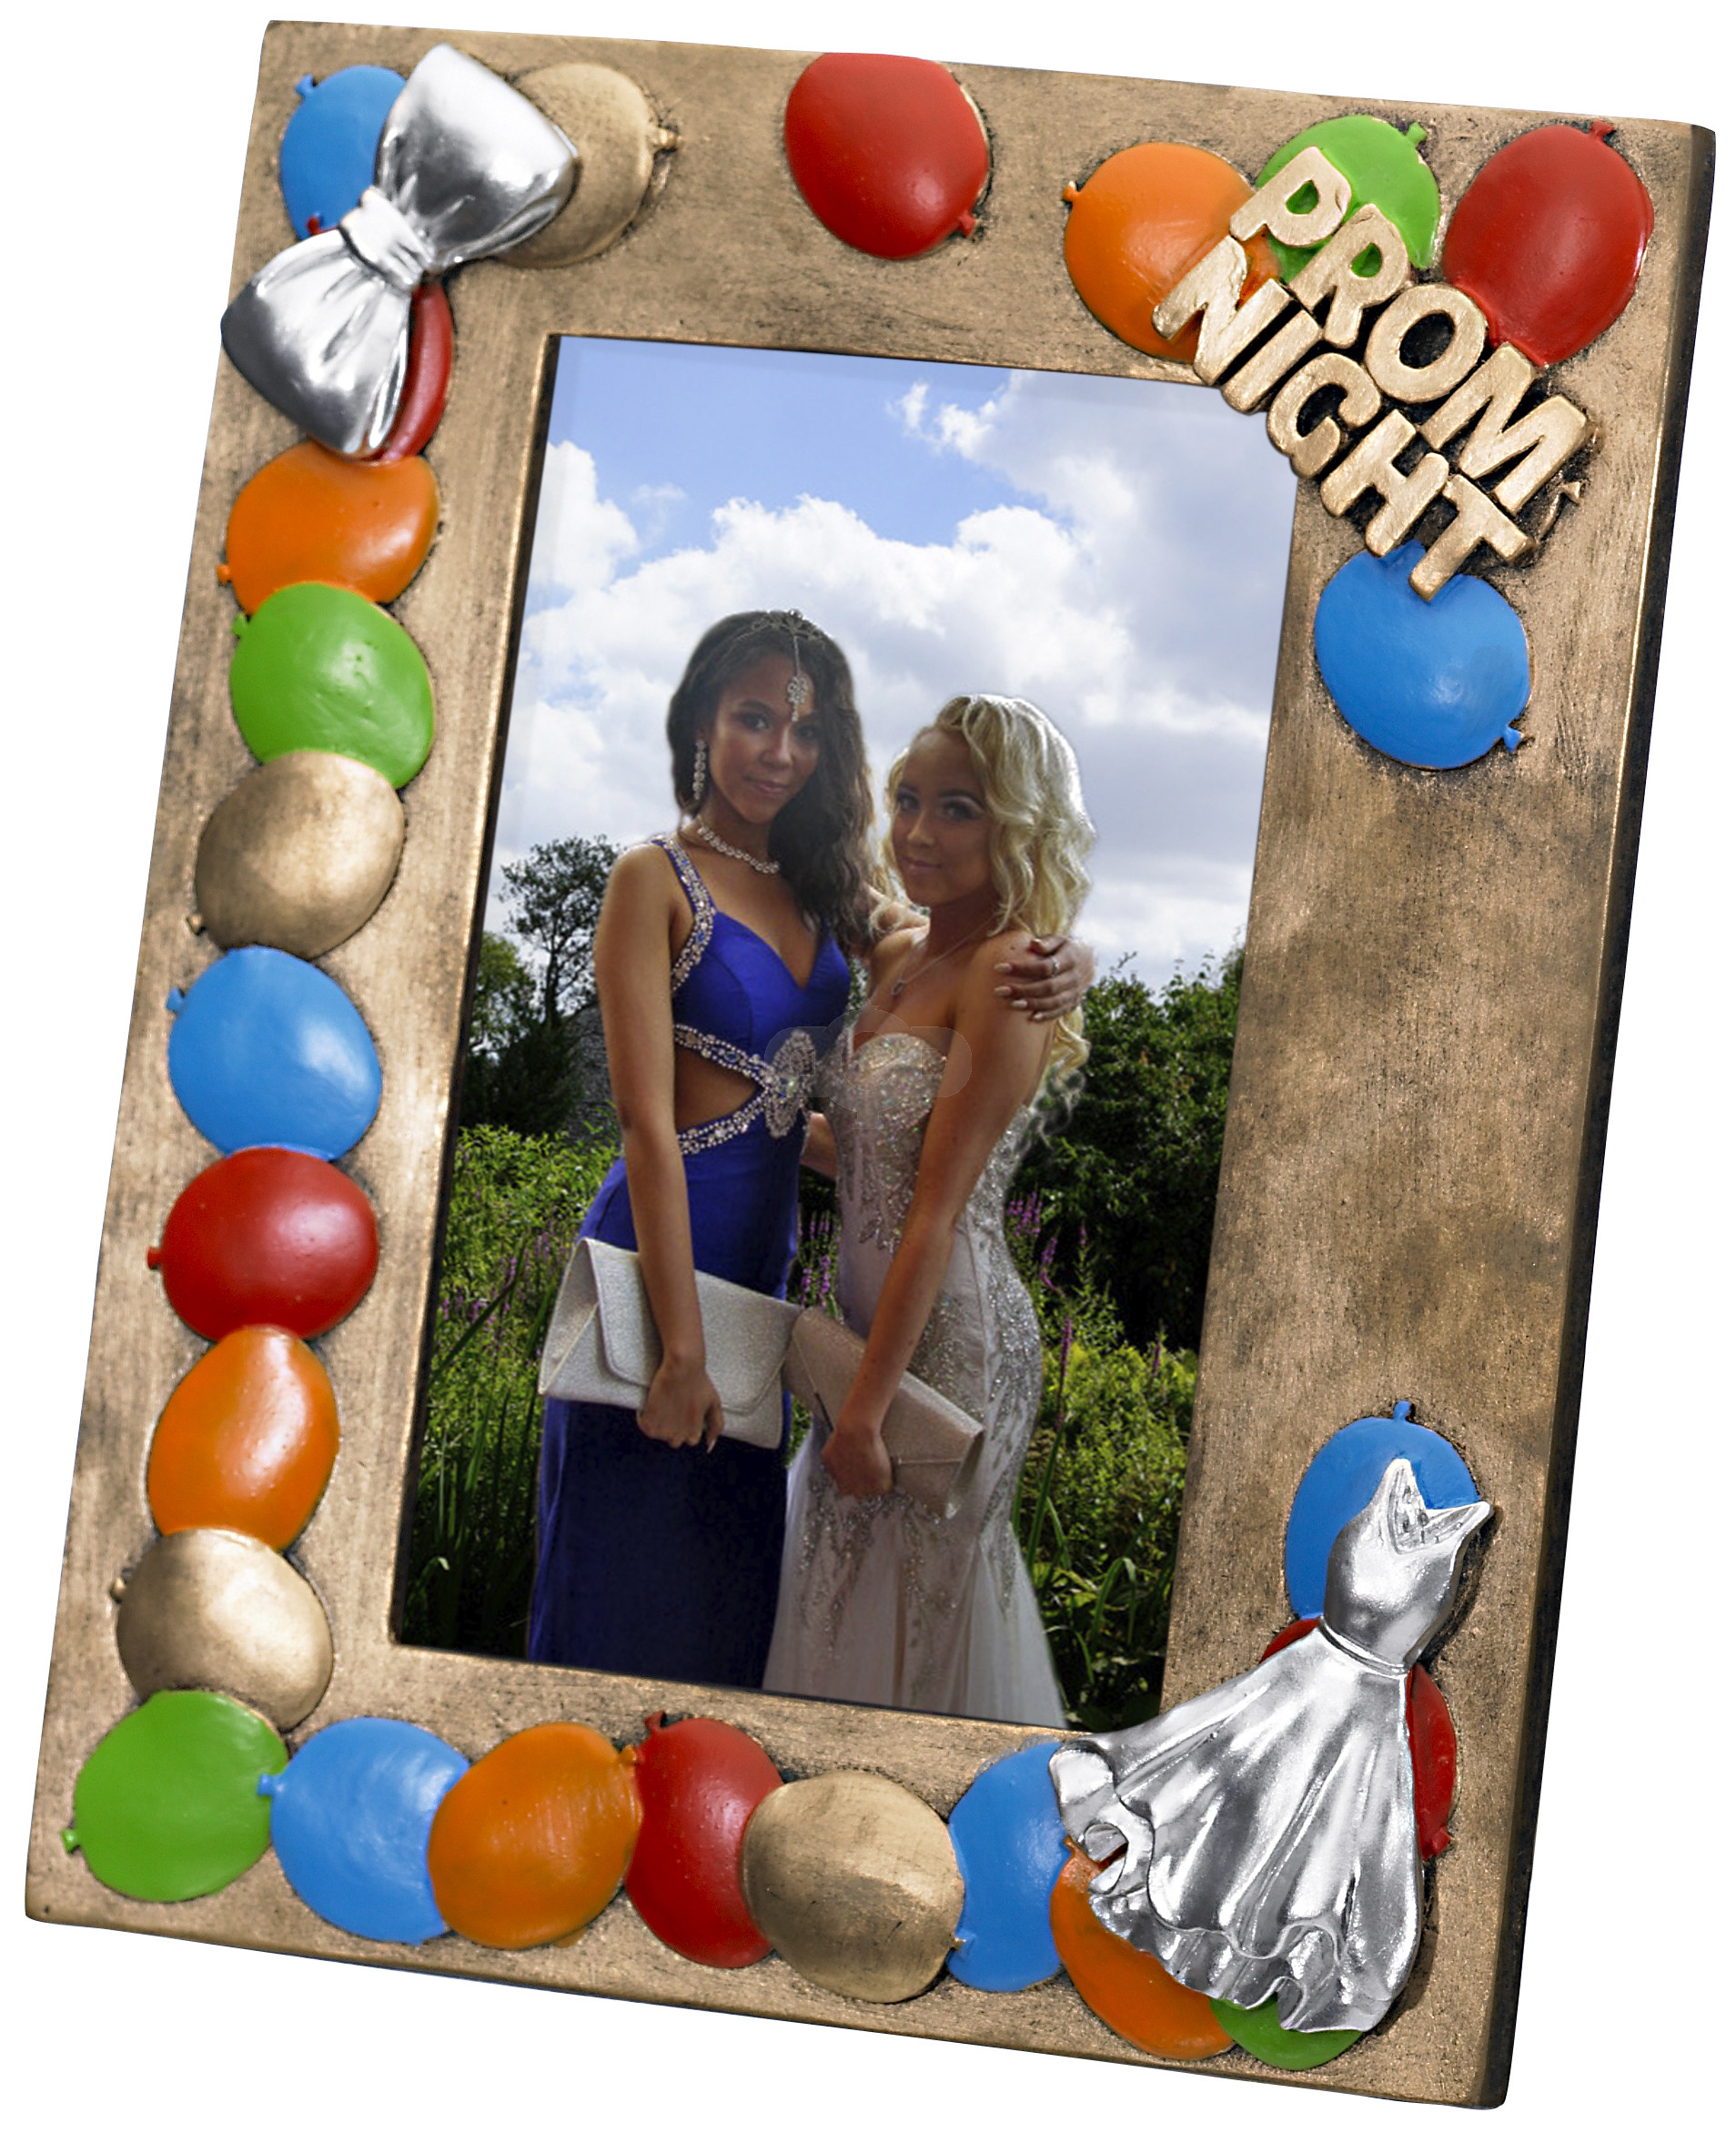 Prom Night Photo Frame